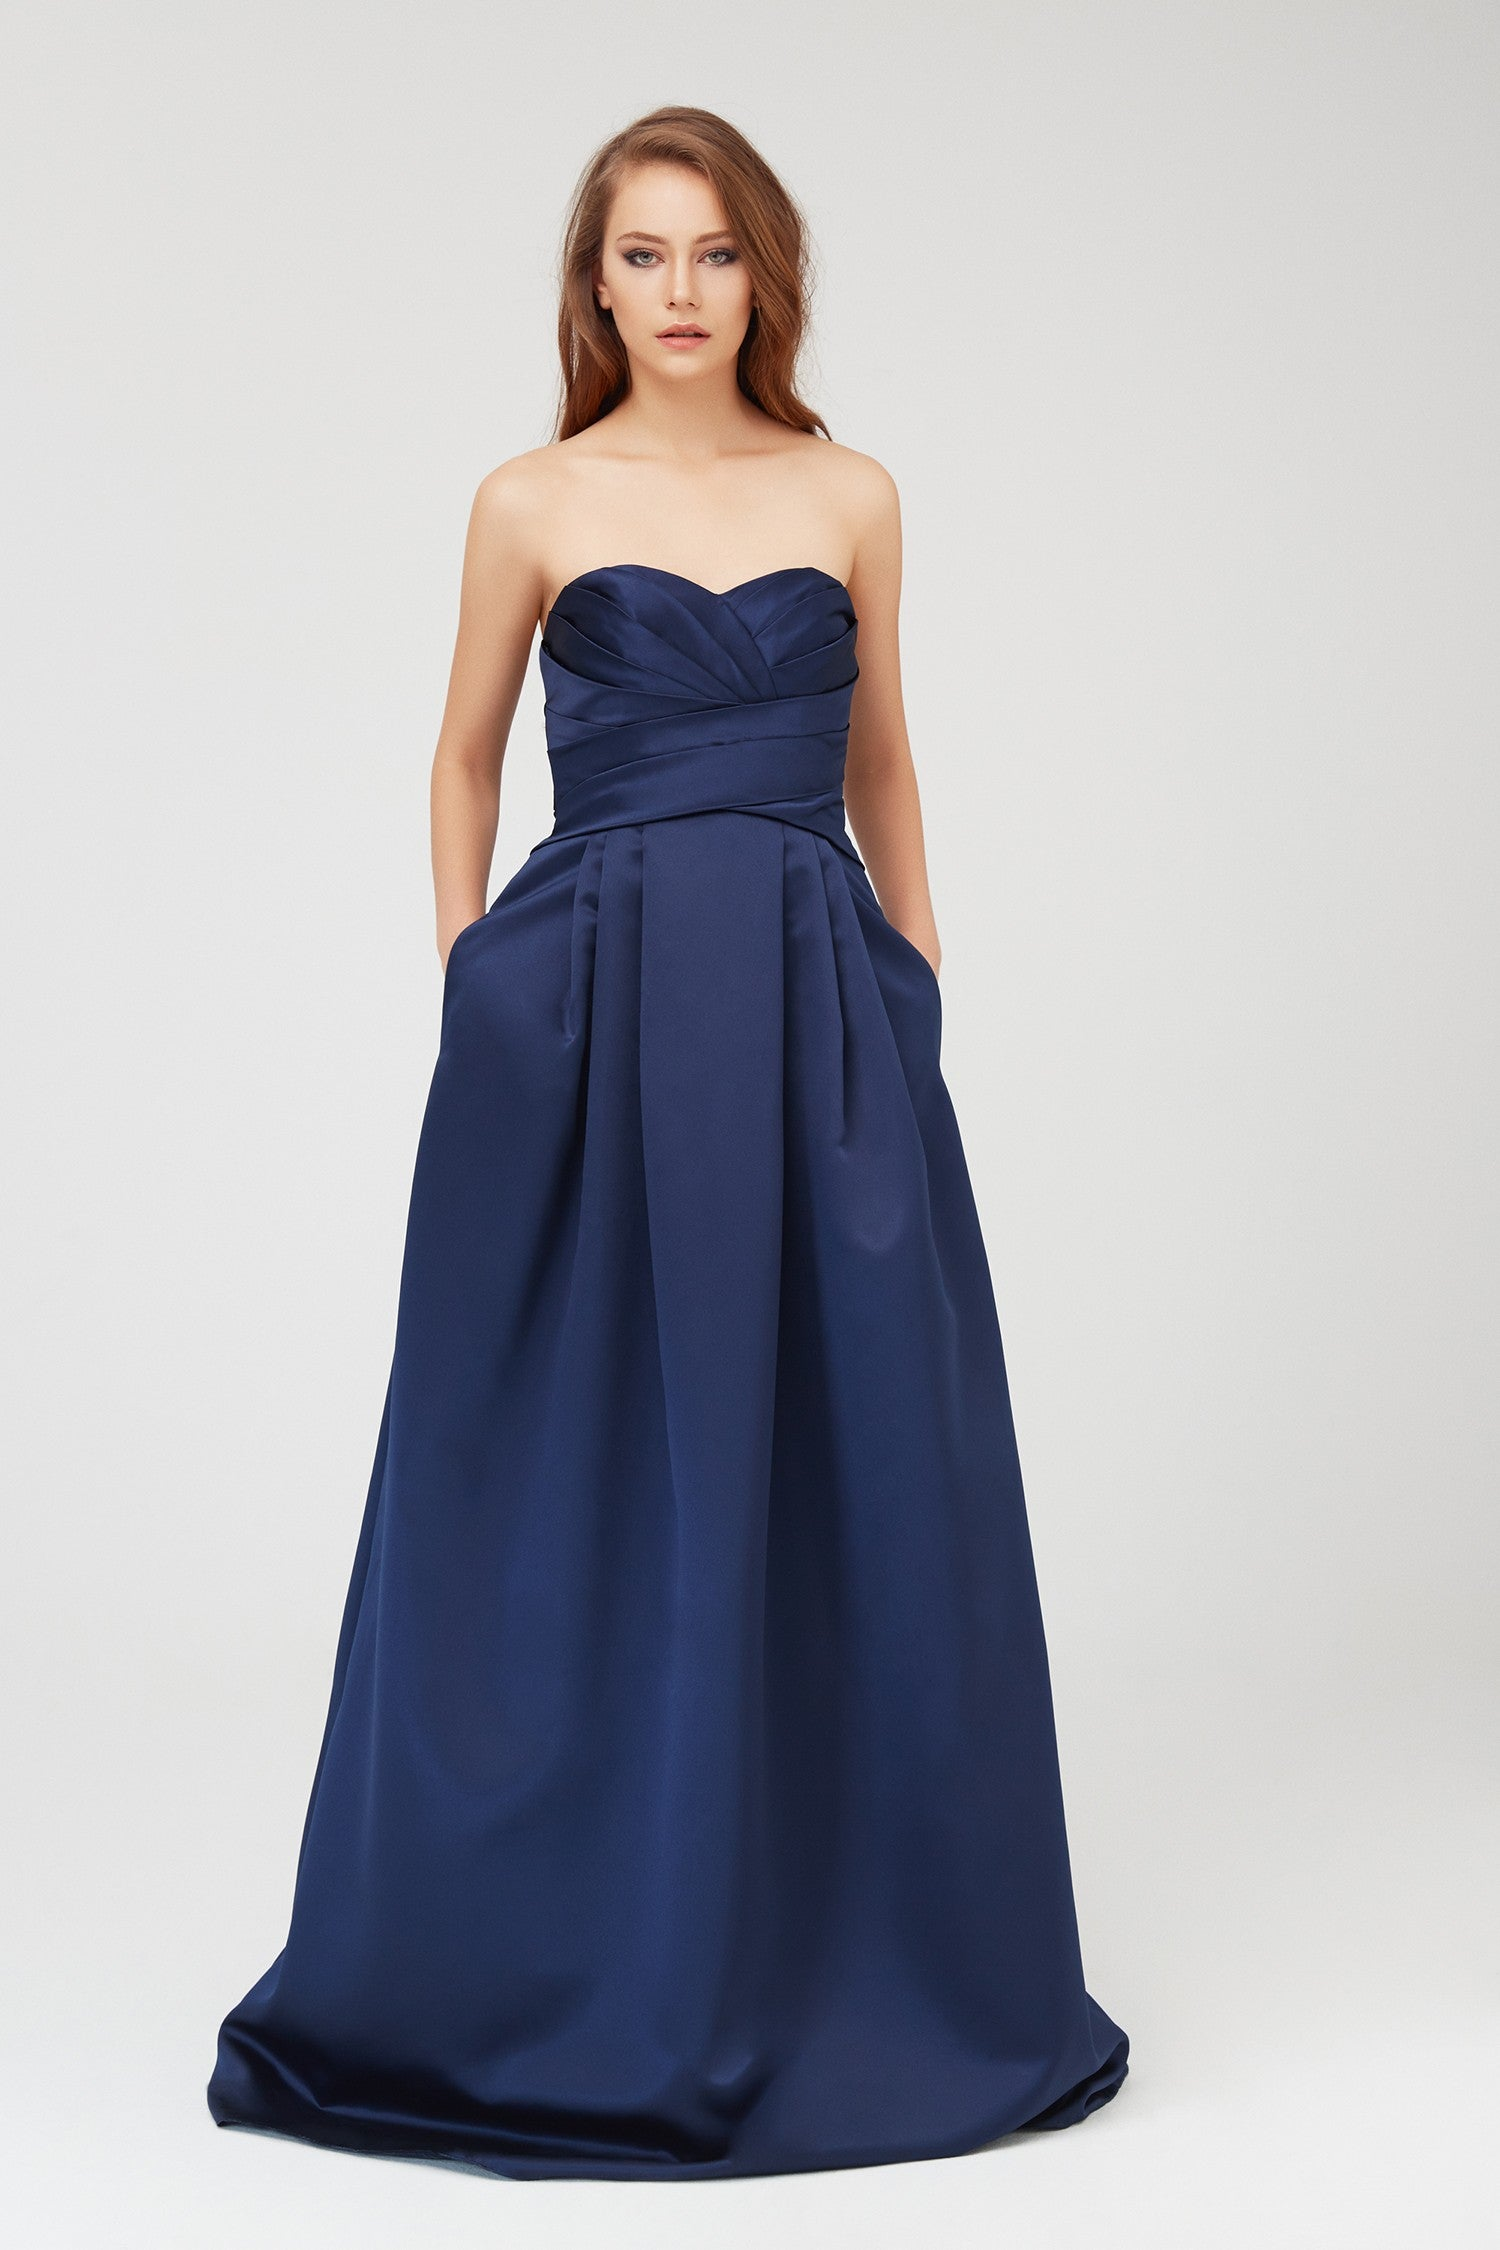 Extra Length Satin Pleated Bodice Ball Gown-4XLF15554